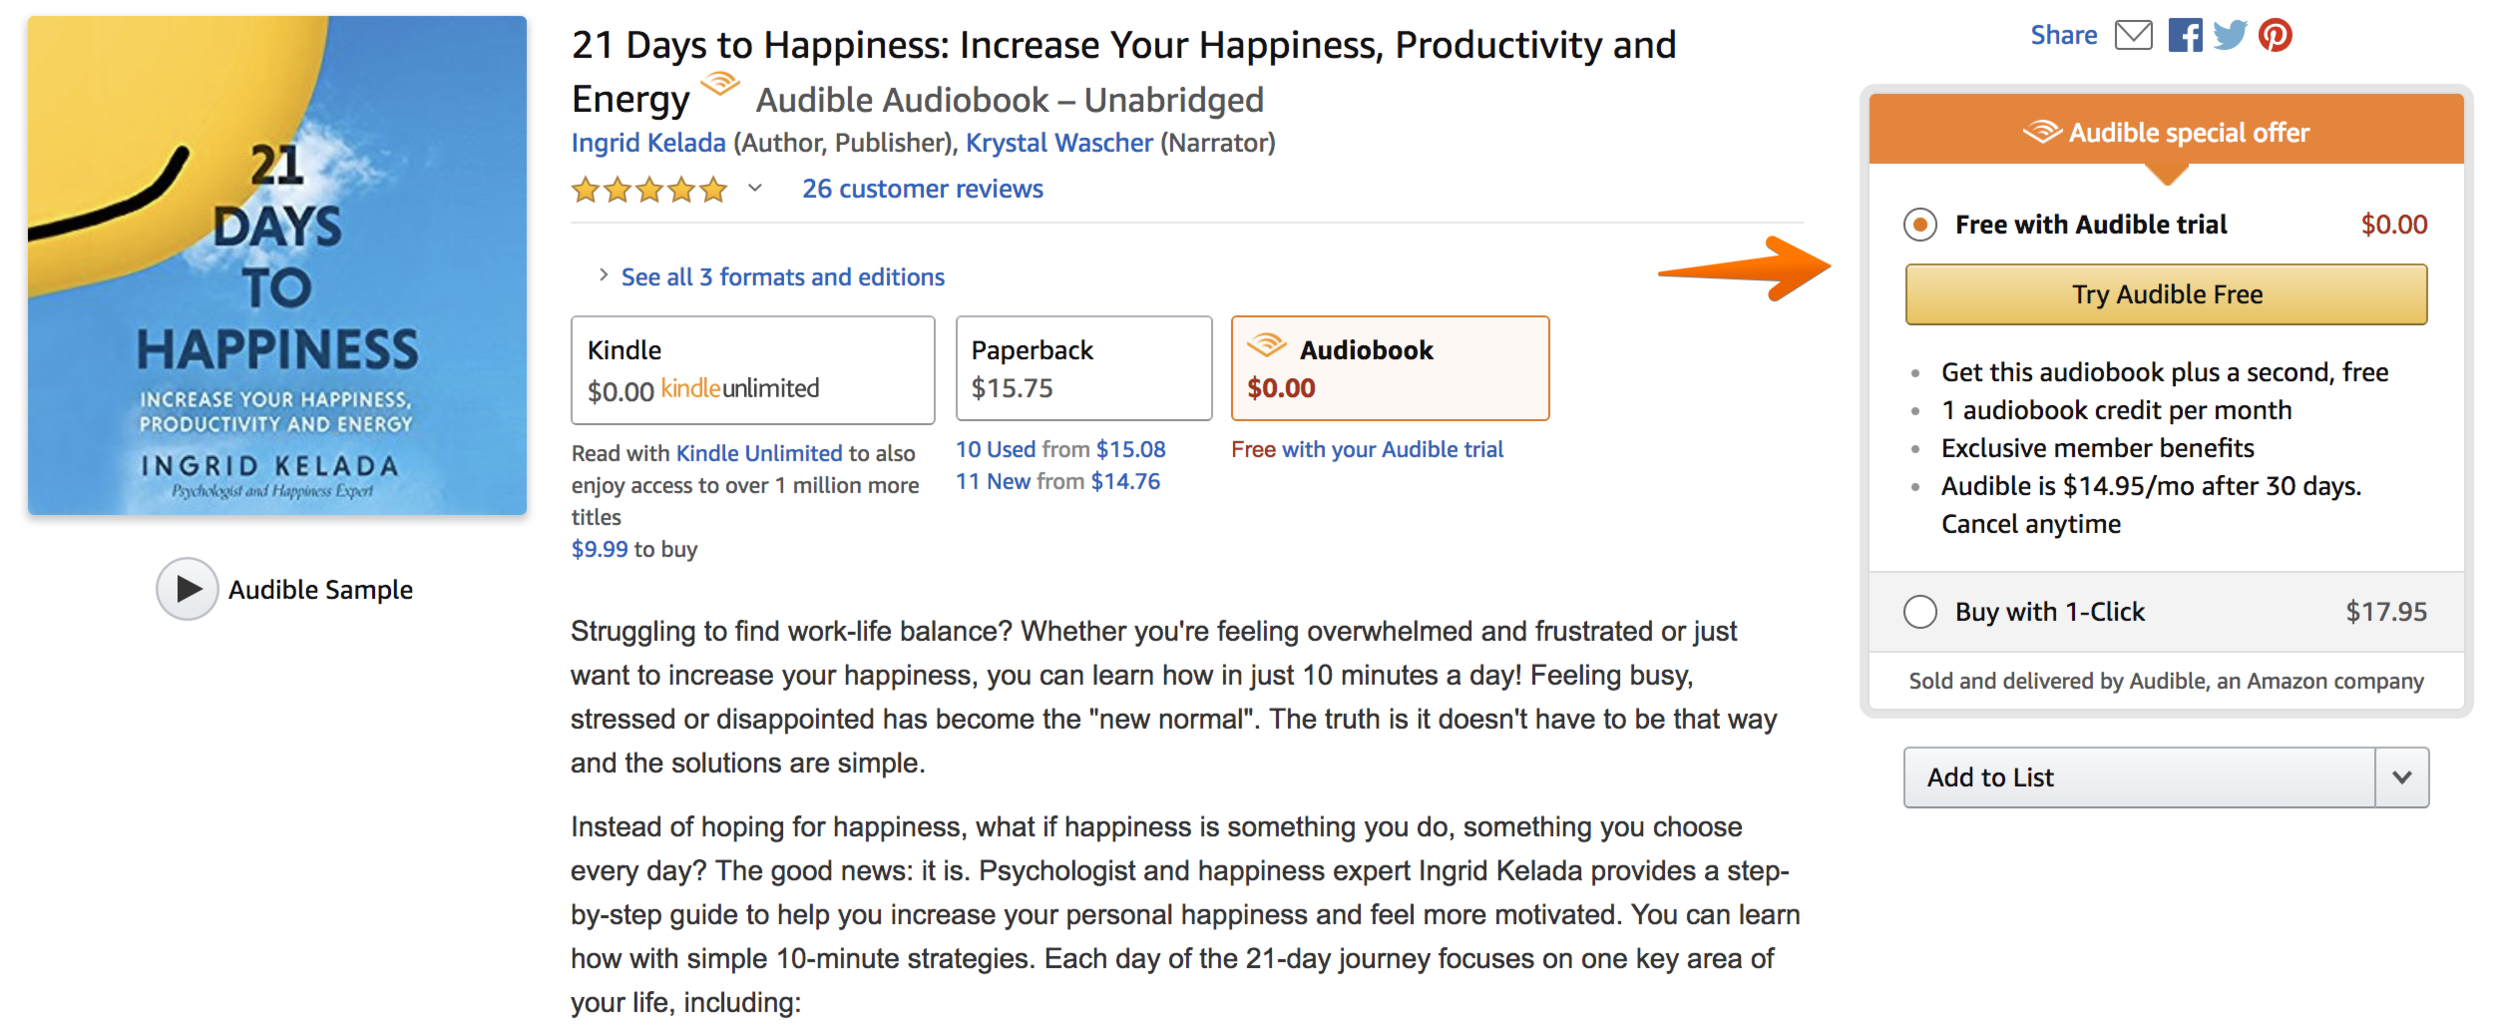 Amazon.com: 21 Days to Happiness: Increase Your Happiness, Productivity and Energy (Audible Audio Edition): Ingrid Kelada, Krys… 2018-06-05 10-55-45.png